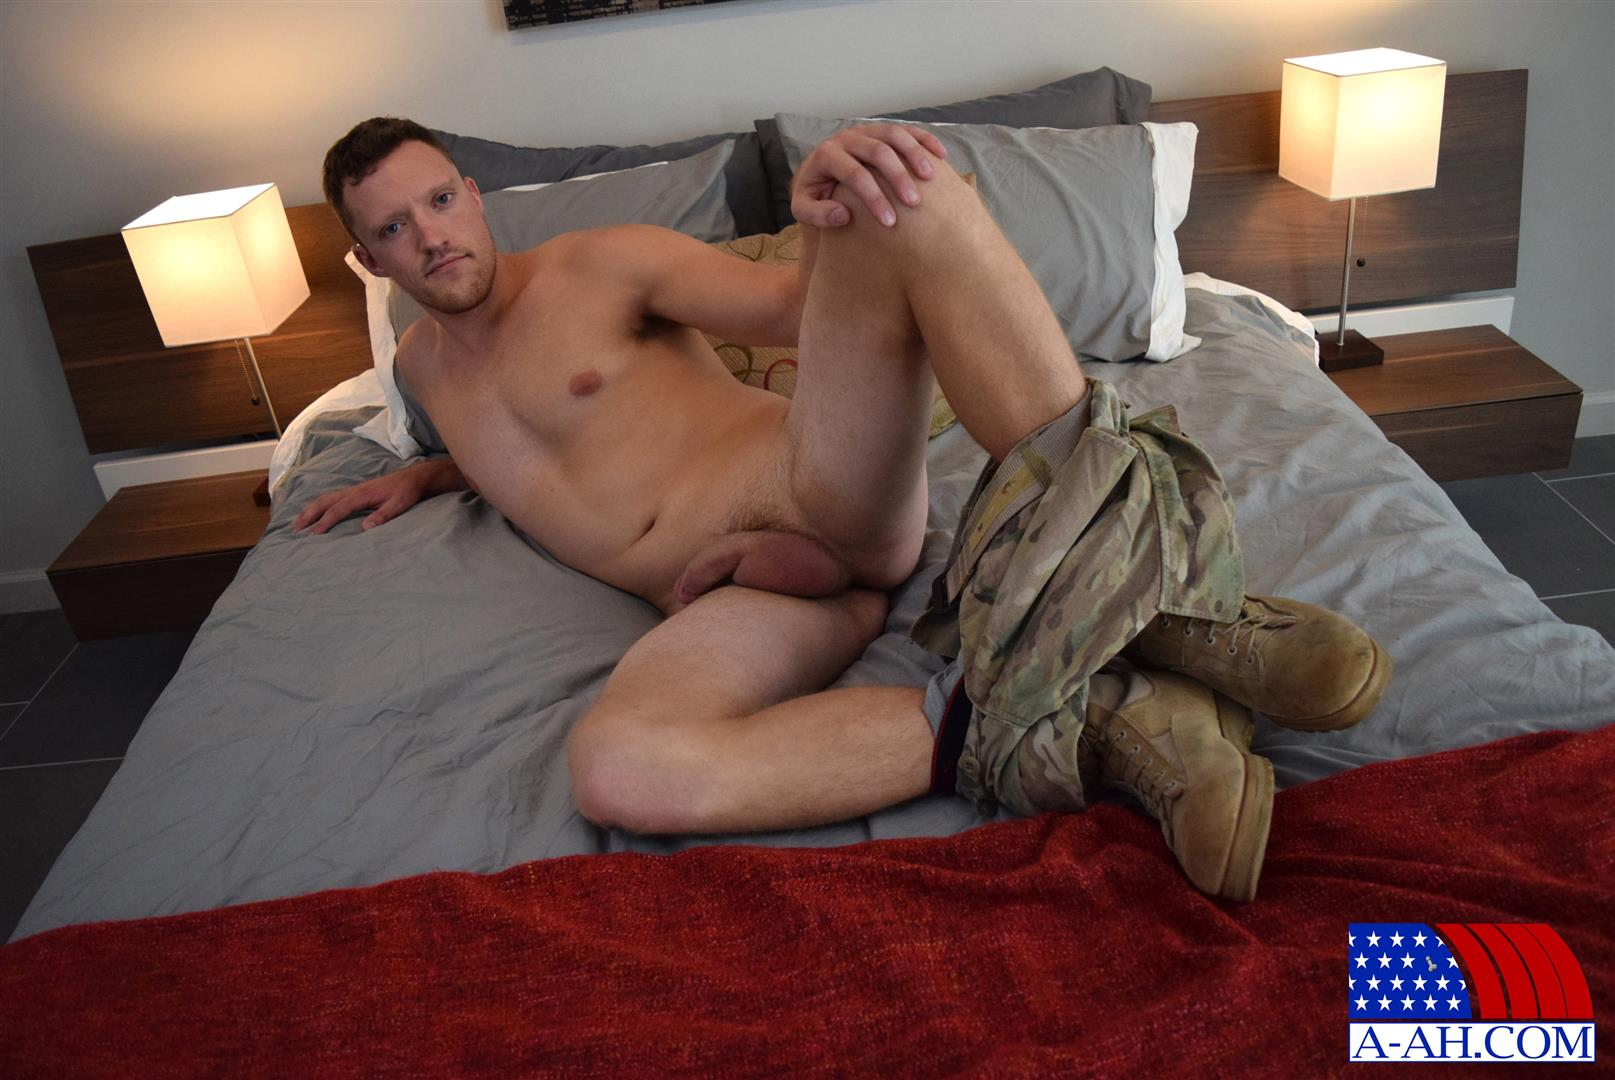 All-American-Heroes-Randy-Army-Sergeant-Naked-With-A-Big-Cock-Amateur-Gay-Porn-11 Army Sergeant Comes Out Of The Closet in Afghanistan